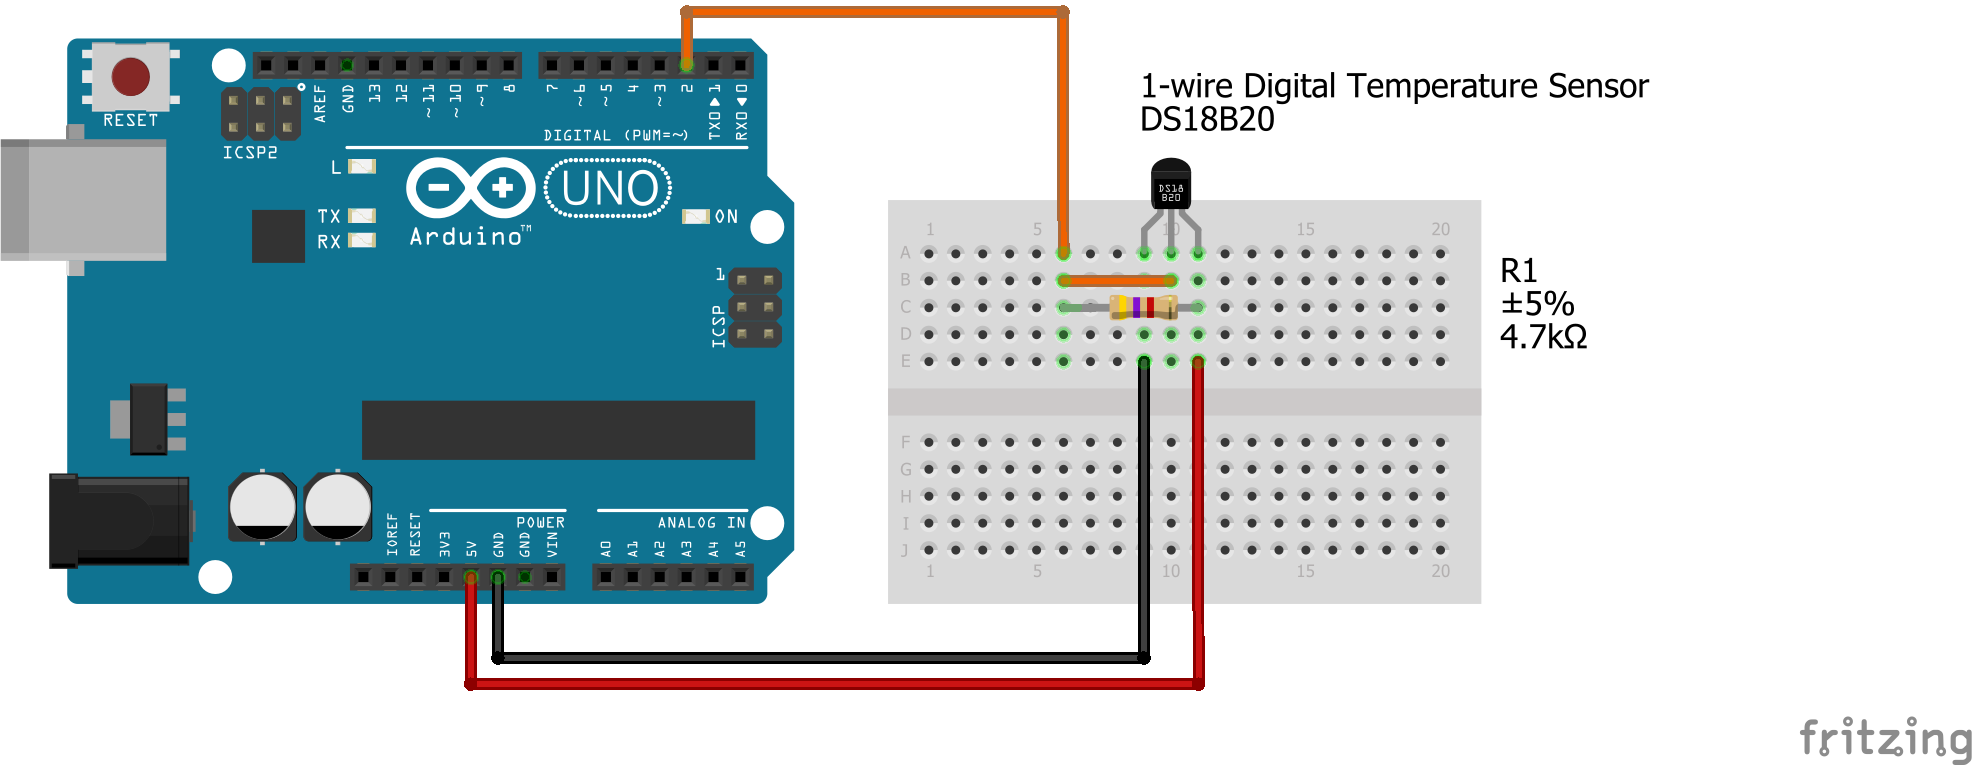 Graphical representation for DS18B20 with Arduino Uno